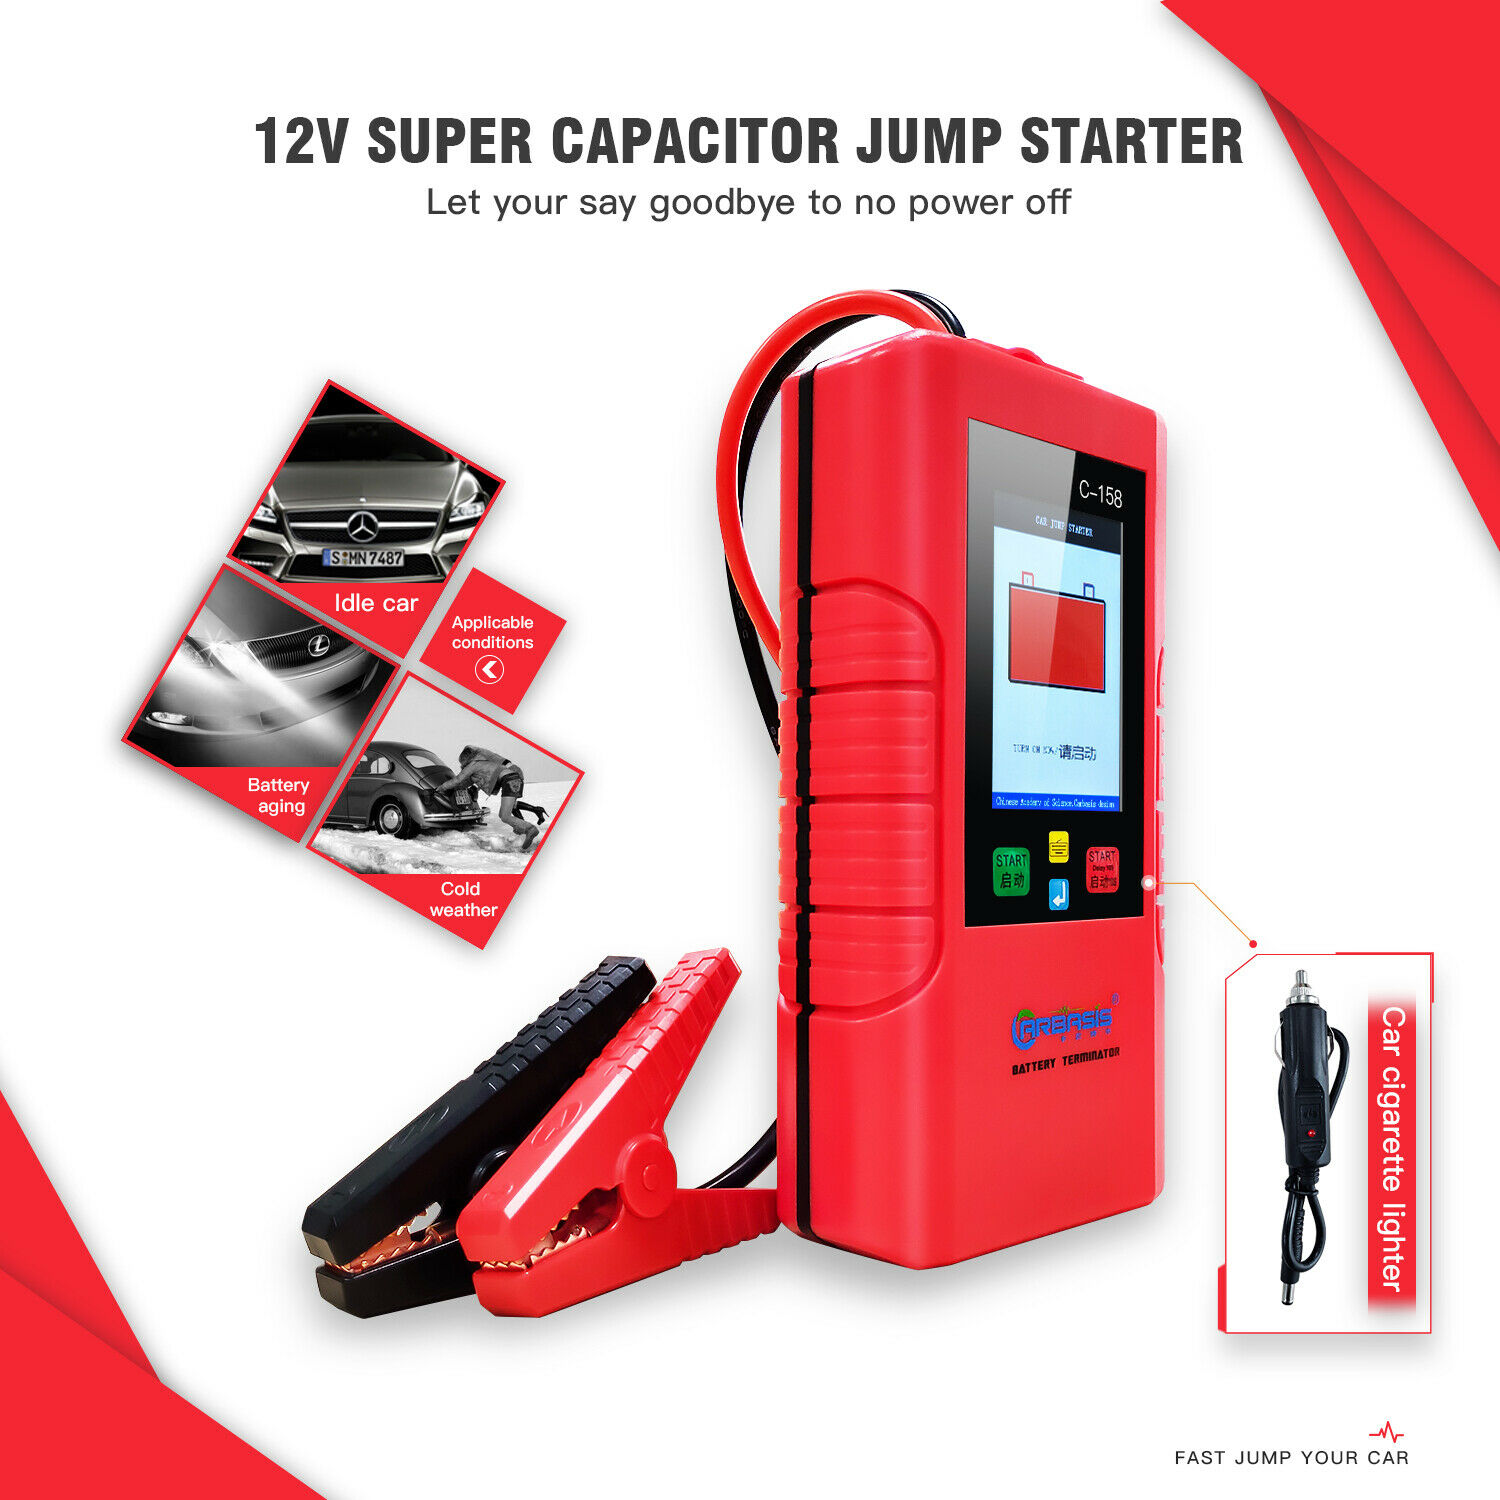 12V Ultra Safe Super Capacitor Car Jump Starter-Ultra Capacitor-Say No to Dead Battery(China)